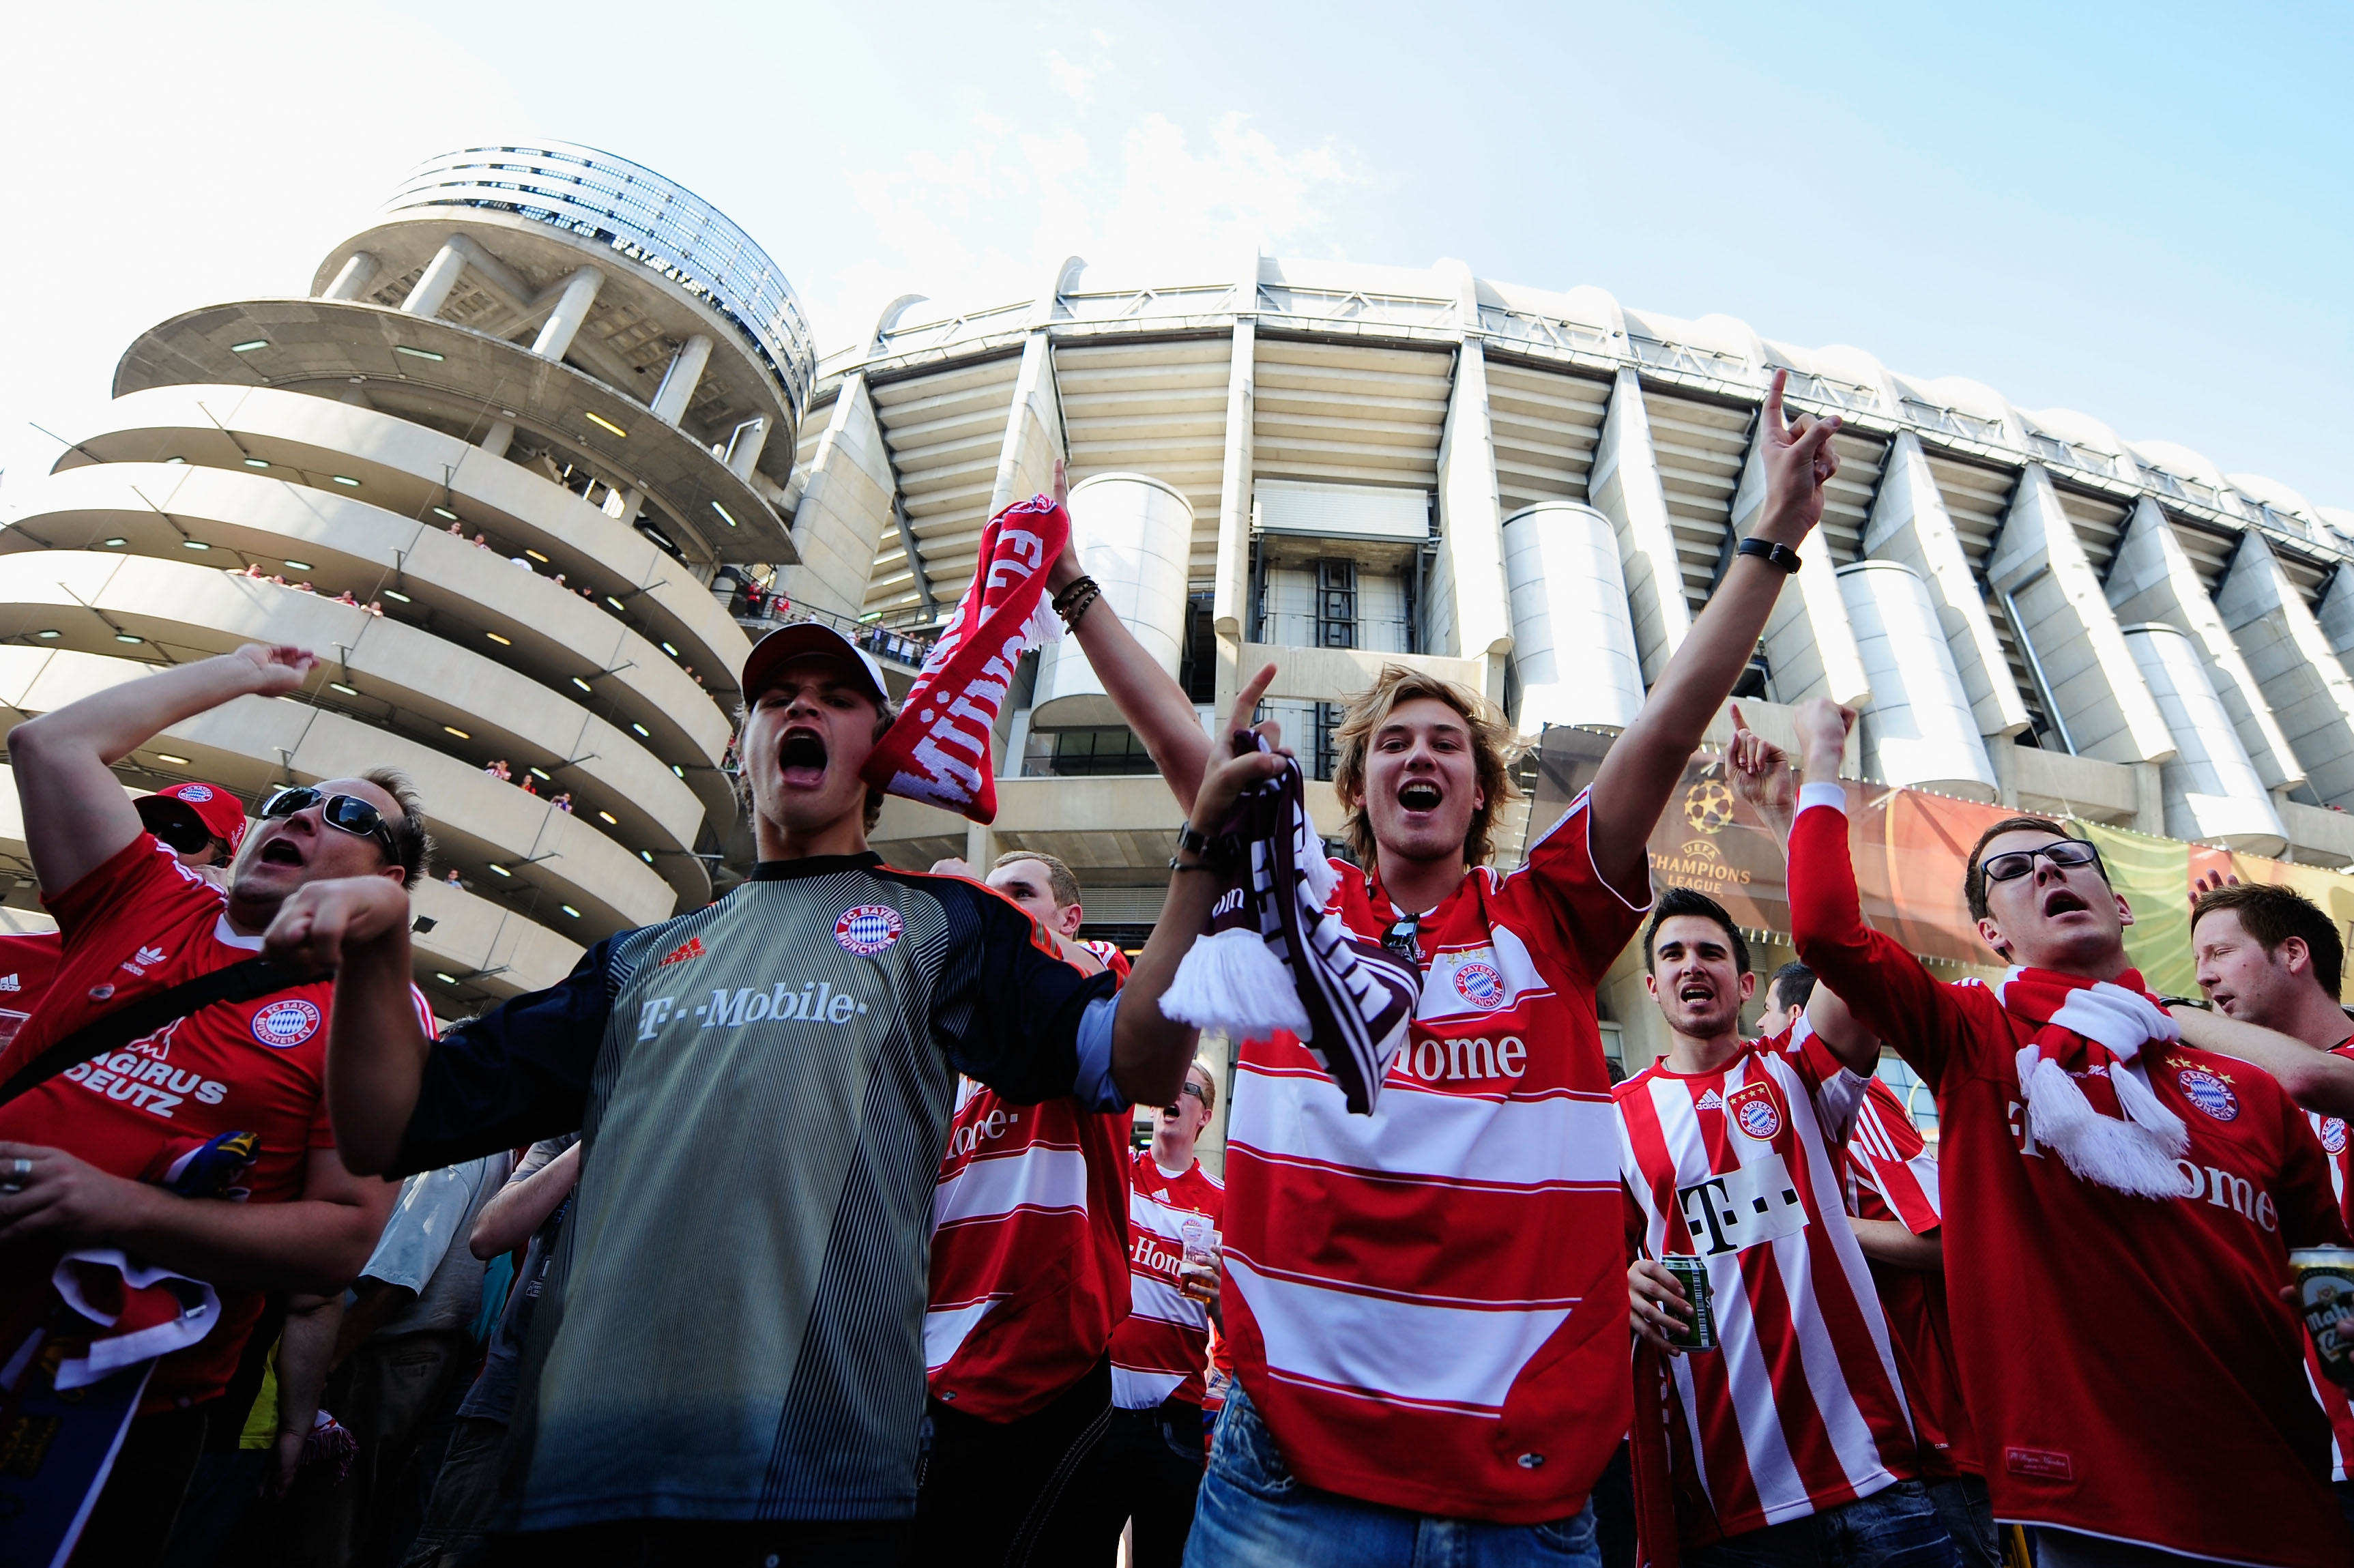 MADRID, SPAIN - MAY 22:  Bayern Muenchen fans enjoy the atmosphere ahead of the UEFA Champions League Final match between FC Bayern Muenchen and Inter Milan at the Estadio Santiago Bernabeu on May 22, 2010 in Madrid, Spain.  (Photo by Jamie McDonald/Getty